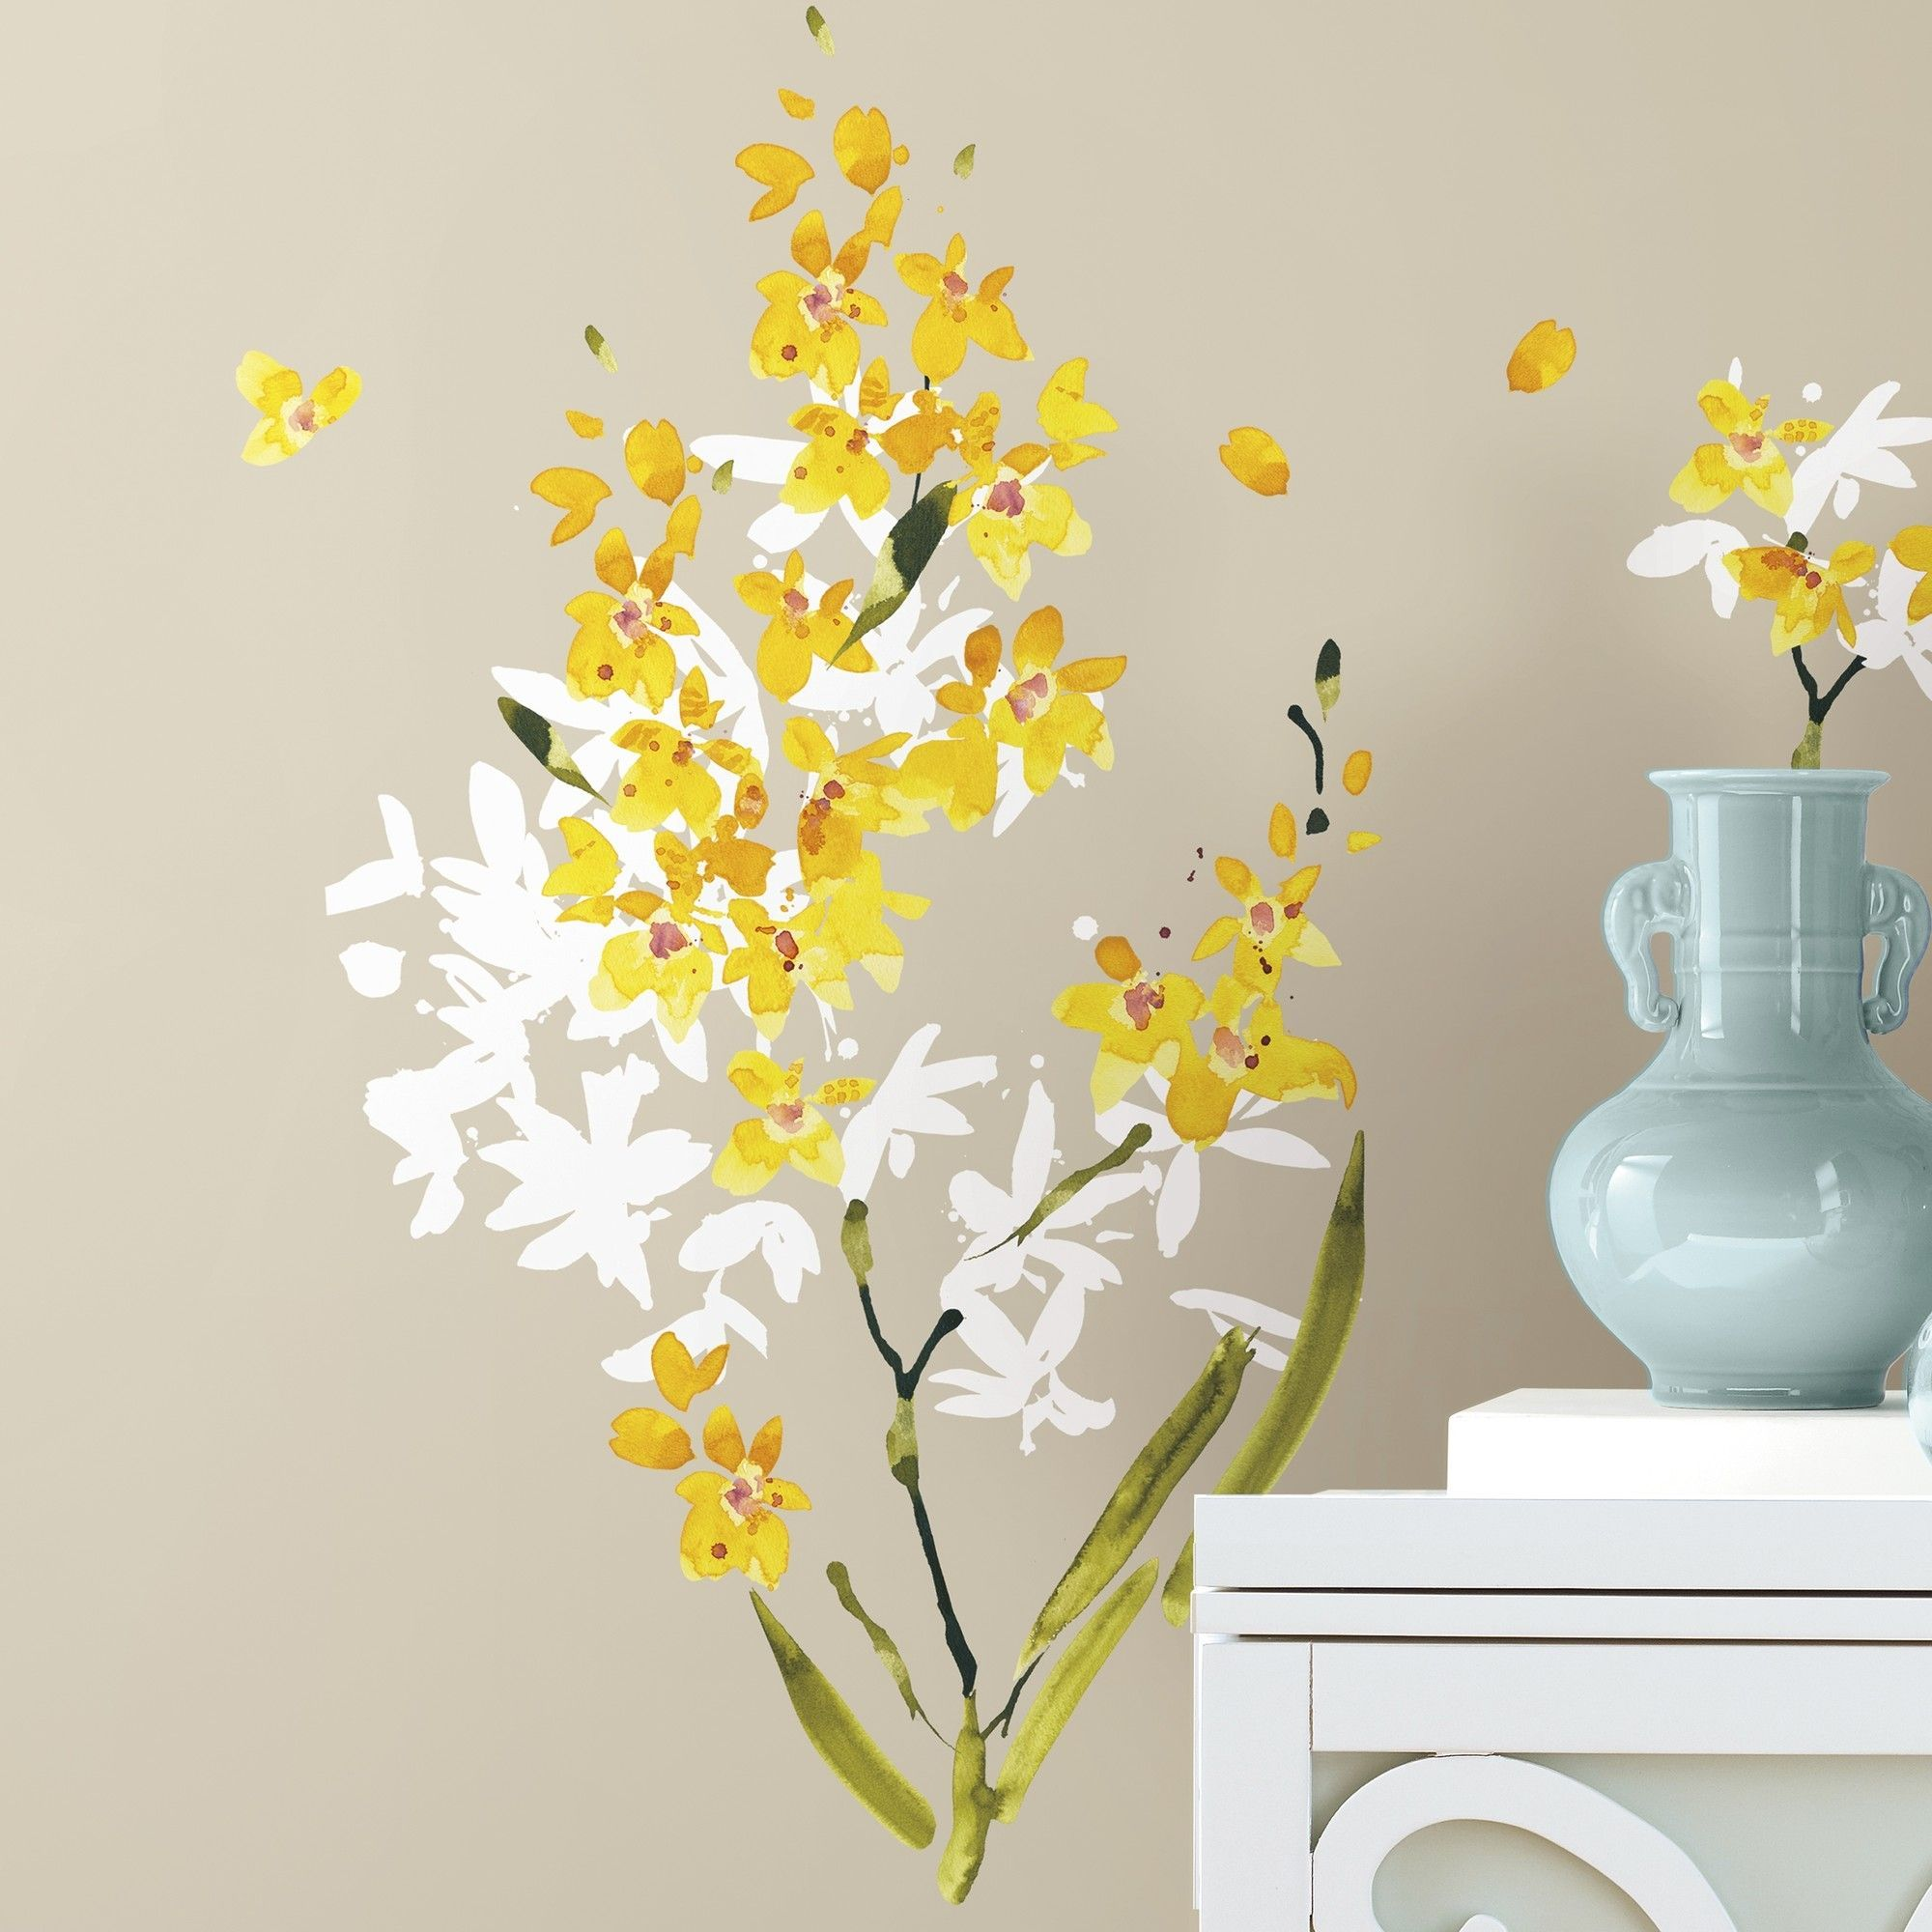 Yellow Flower Wall Decal Set | Products | Pinterest | Flower wall ...